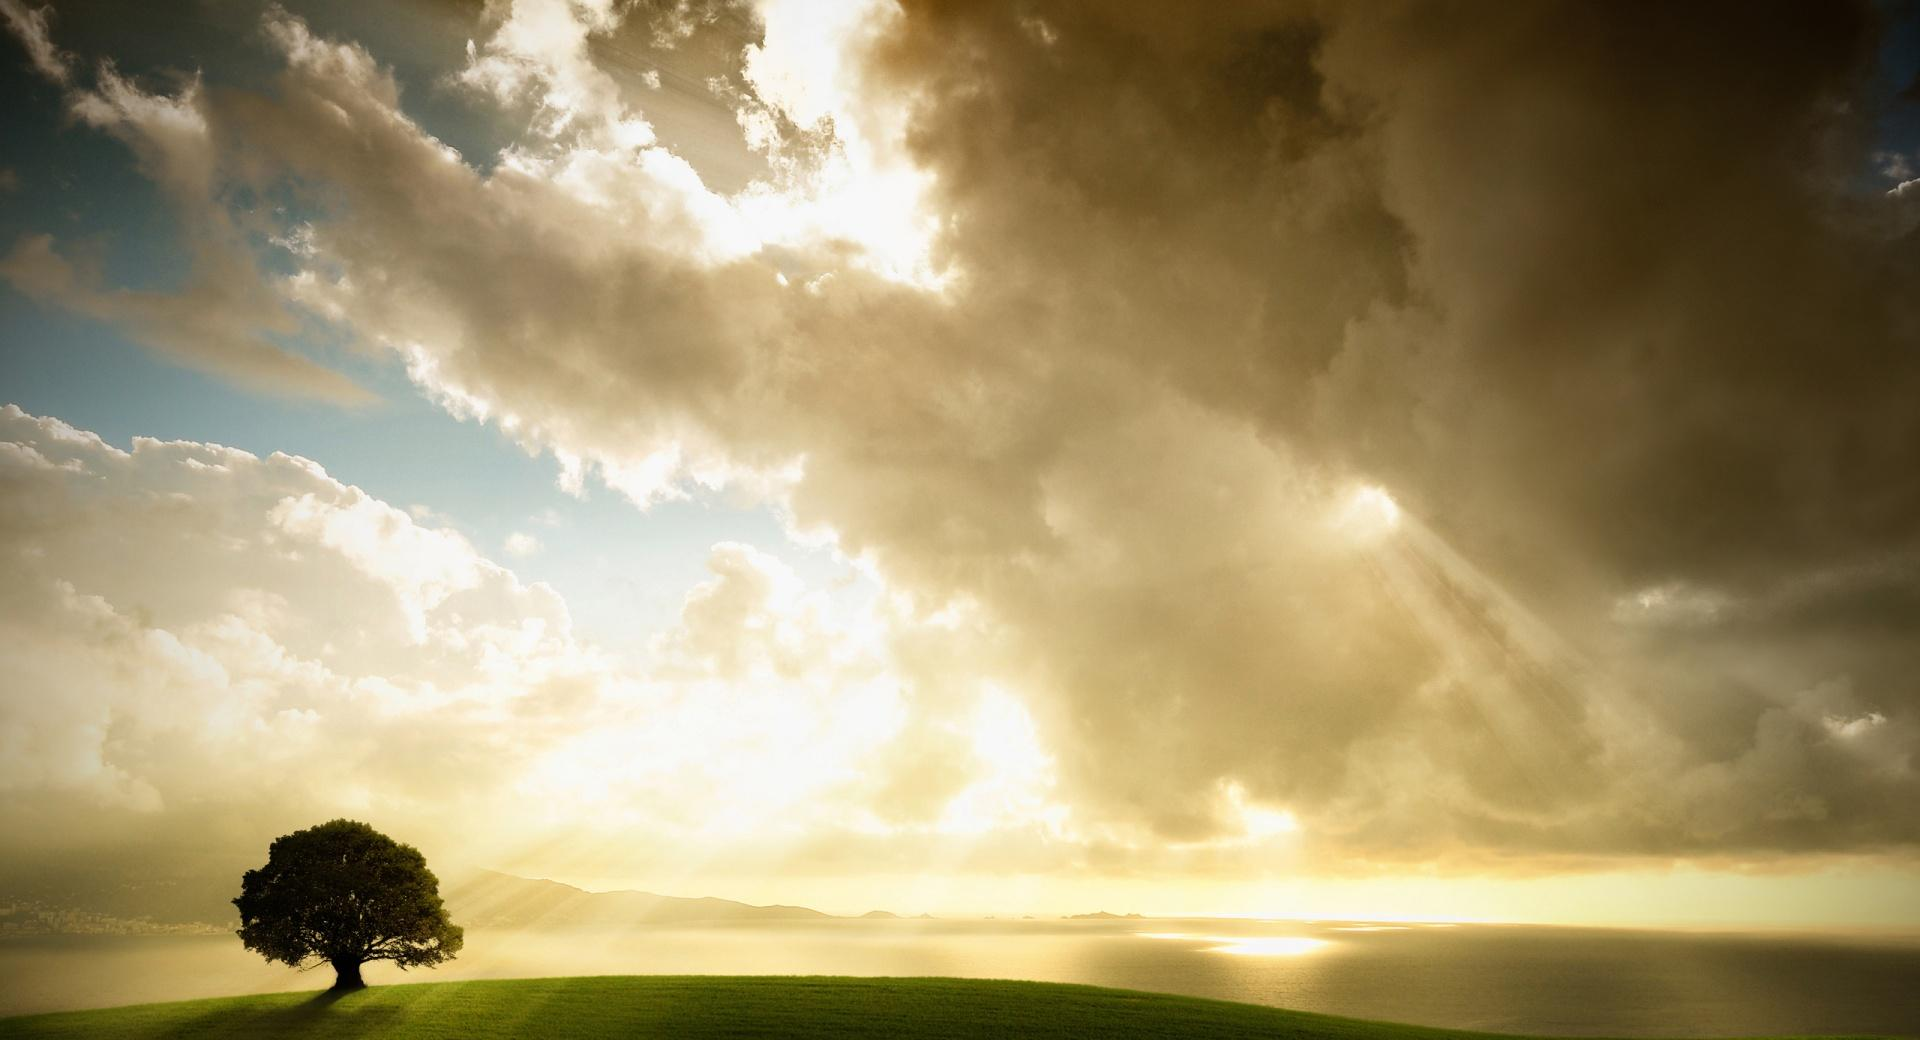 Sun Shining Through The Clouds wallpapers HD quality